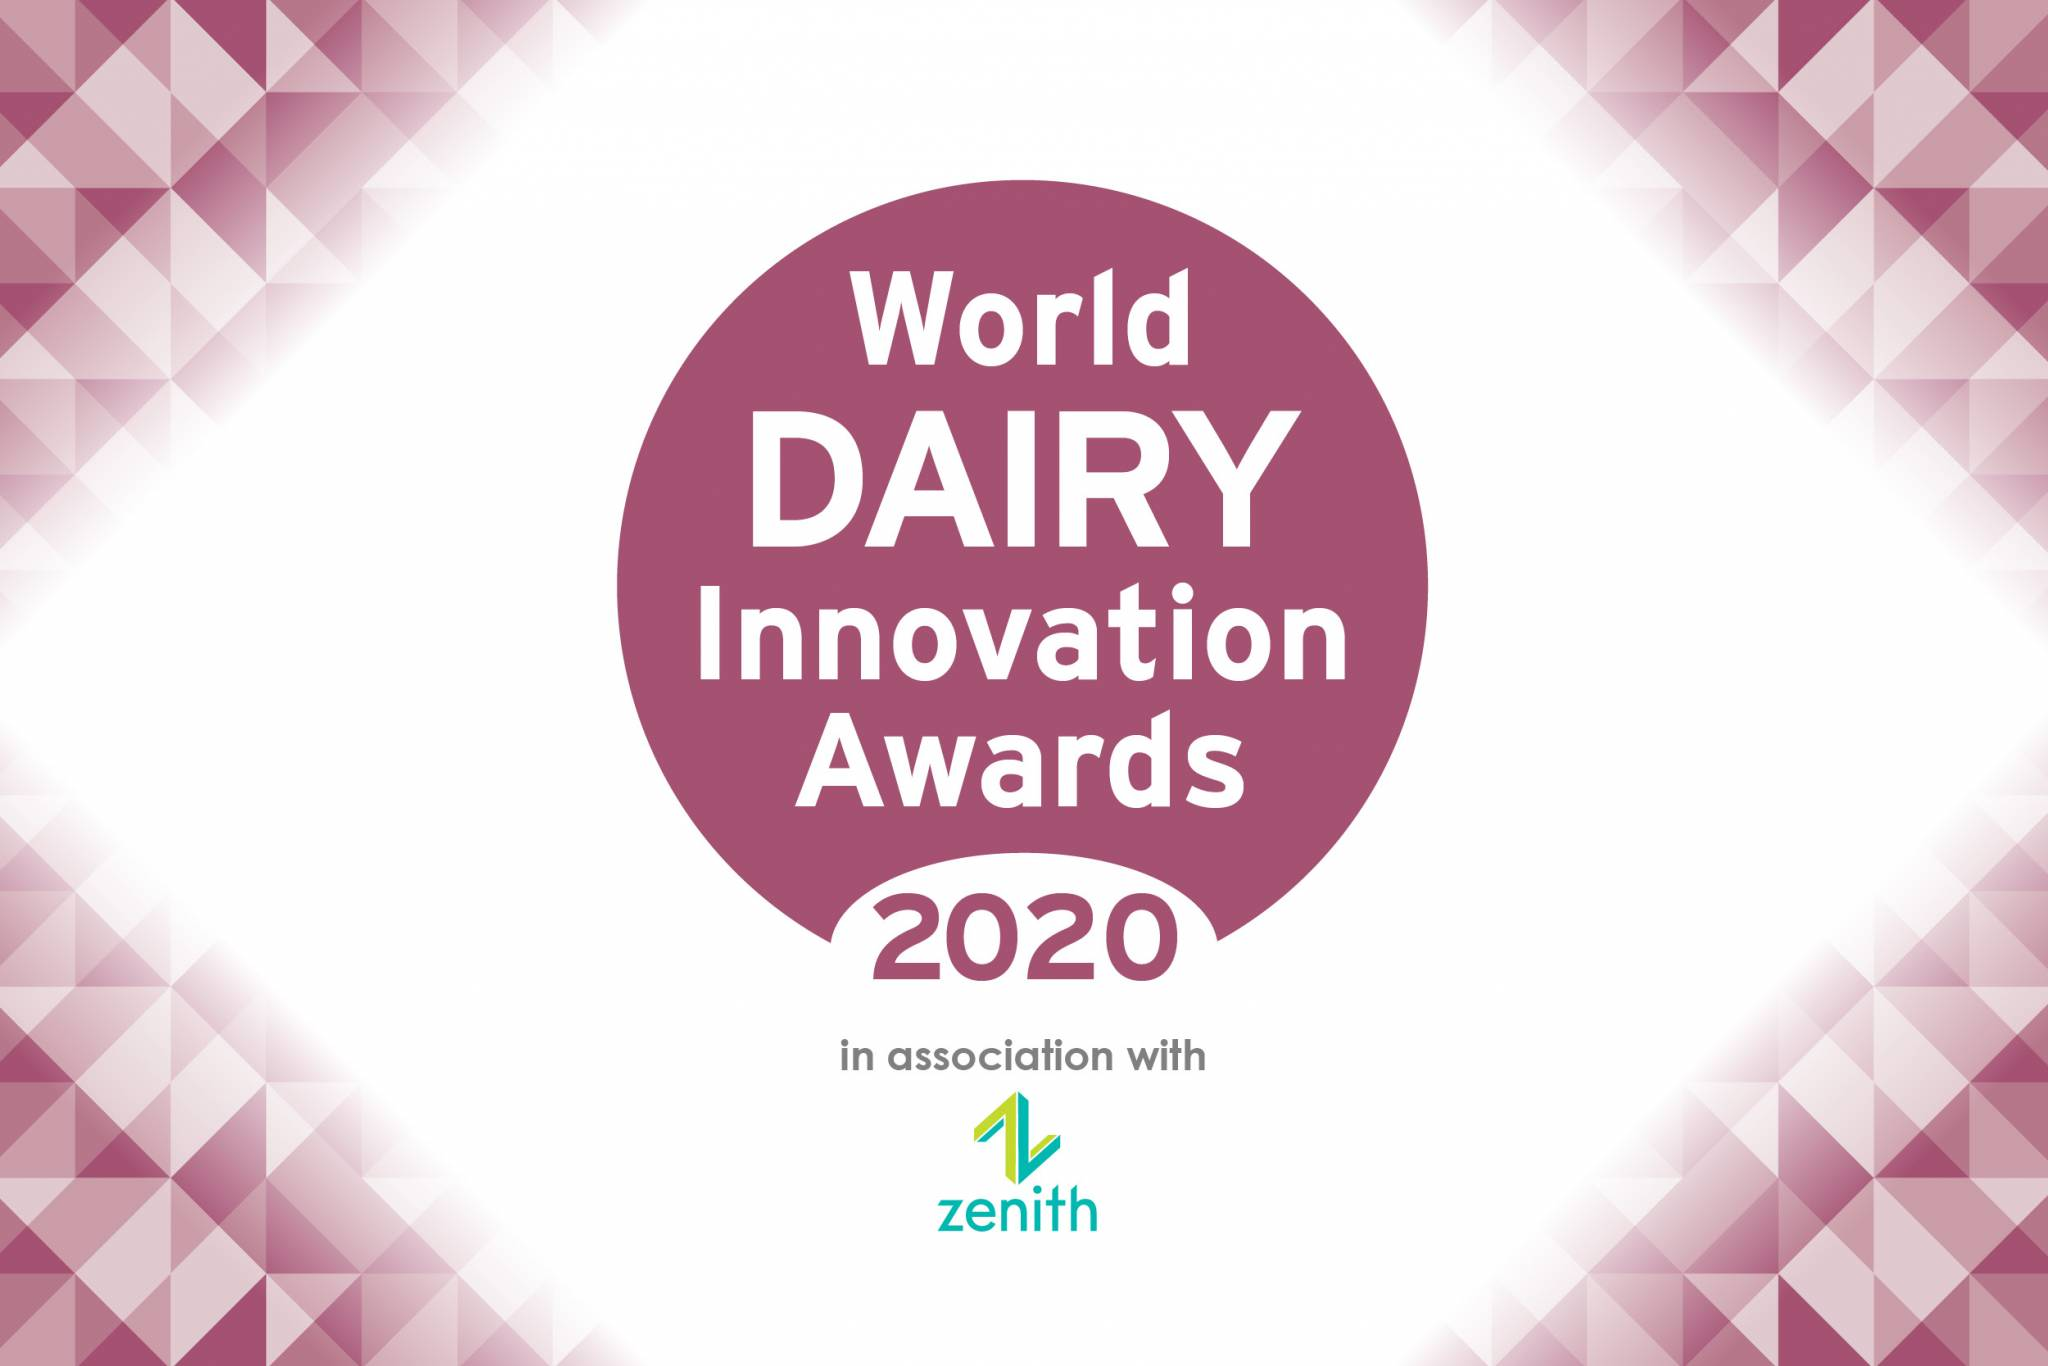 World Dairy Innovation Awards still taking place this June